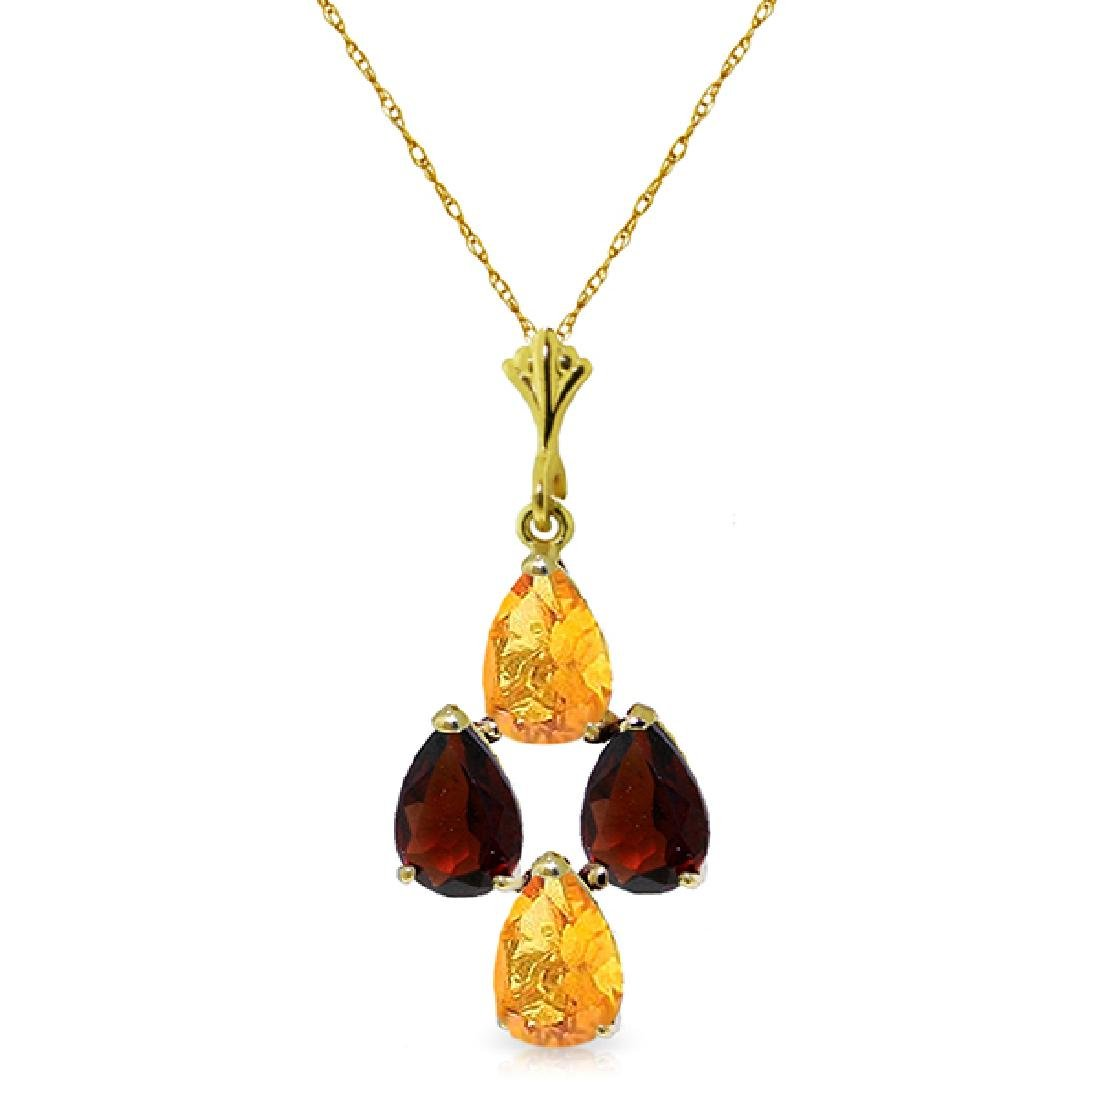 Genuine 1.50 ctw Citrine & Garnet Necklace Jewelry 14KT